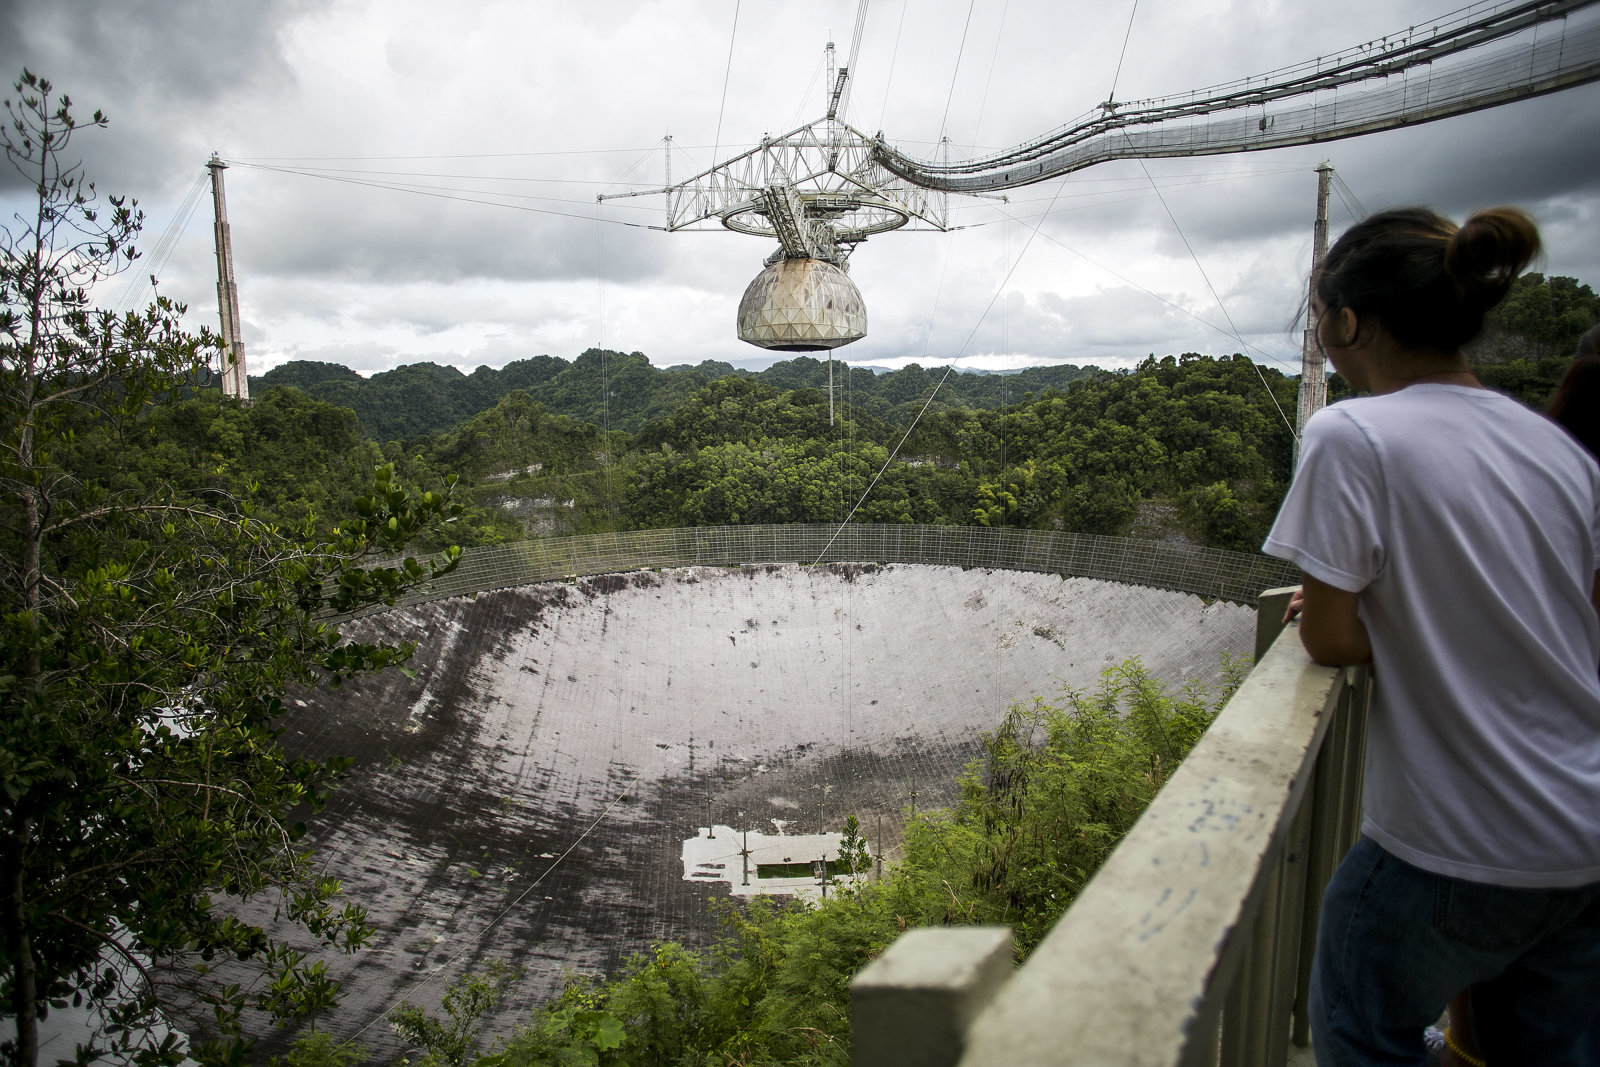 A visitor views the world's largest single dish radio telescope at the Arecibo Observatory in Arecibo, Puerto Rico, on Friday, Aug. 25, 2017. Over the years, Puerto Rico has wooed visitors and investors with beaches, sun, tax breaks and splashy public works. Now the Caribbean island wants to add an outpost of Chinese culture, complete with graceful pavilions and regional cuisine. Photographer: Xavier Garcia/Bloomberg via Getty Images